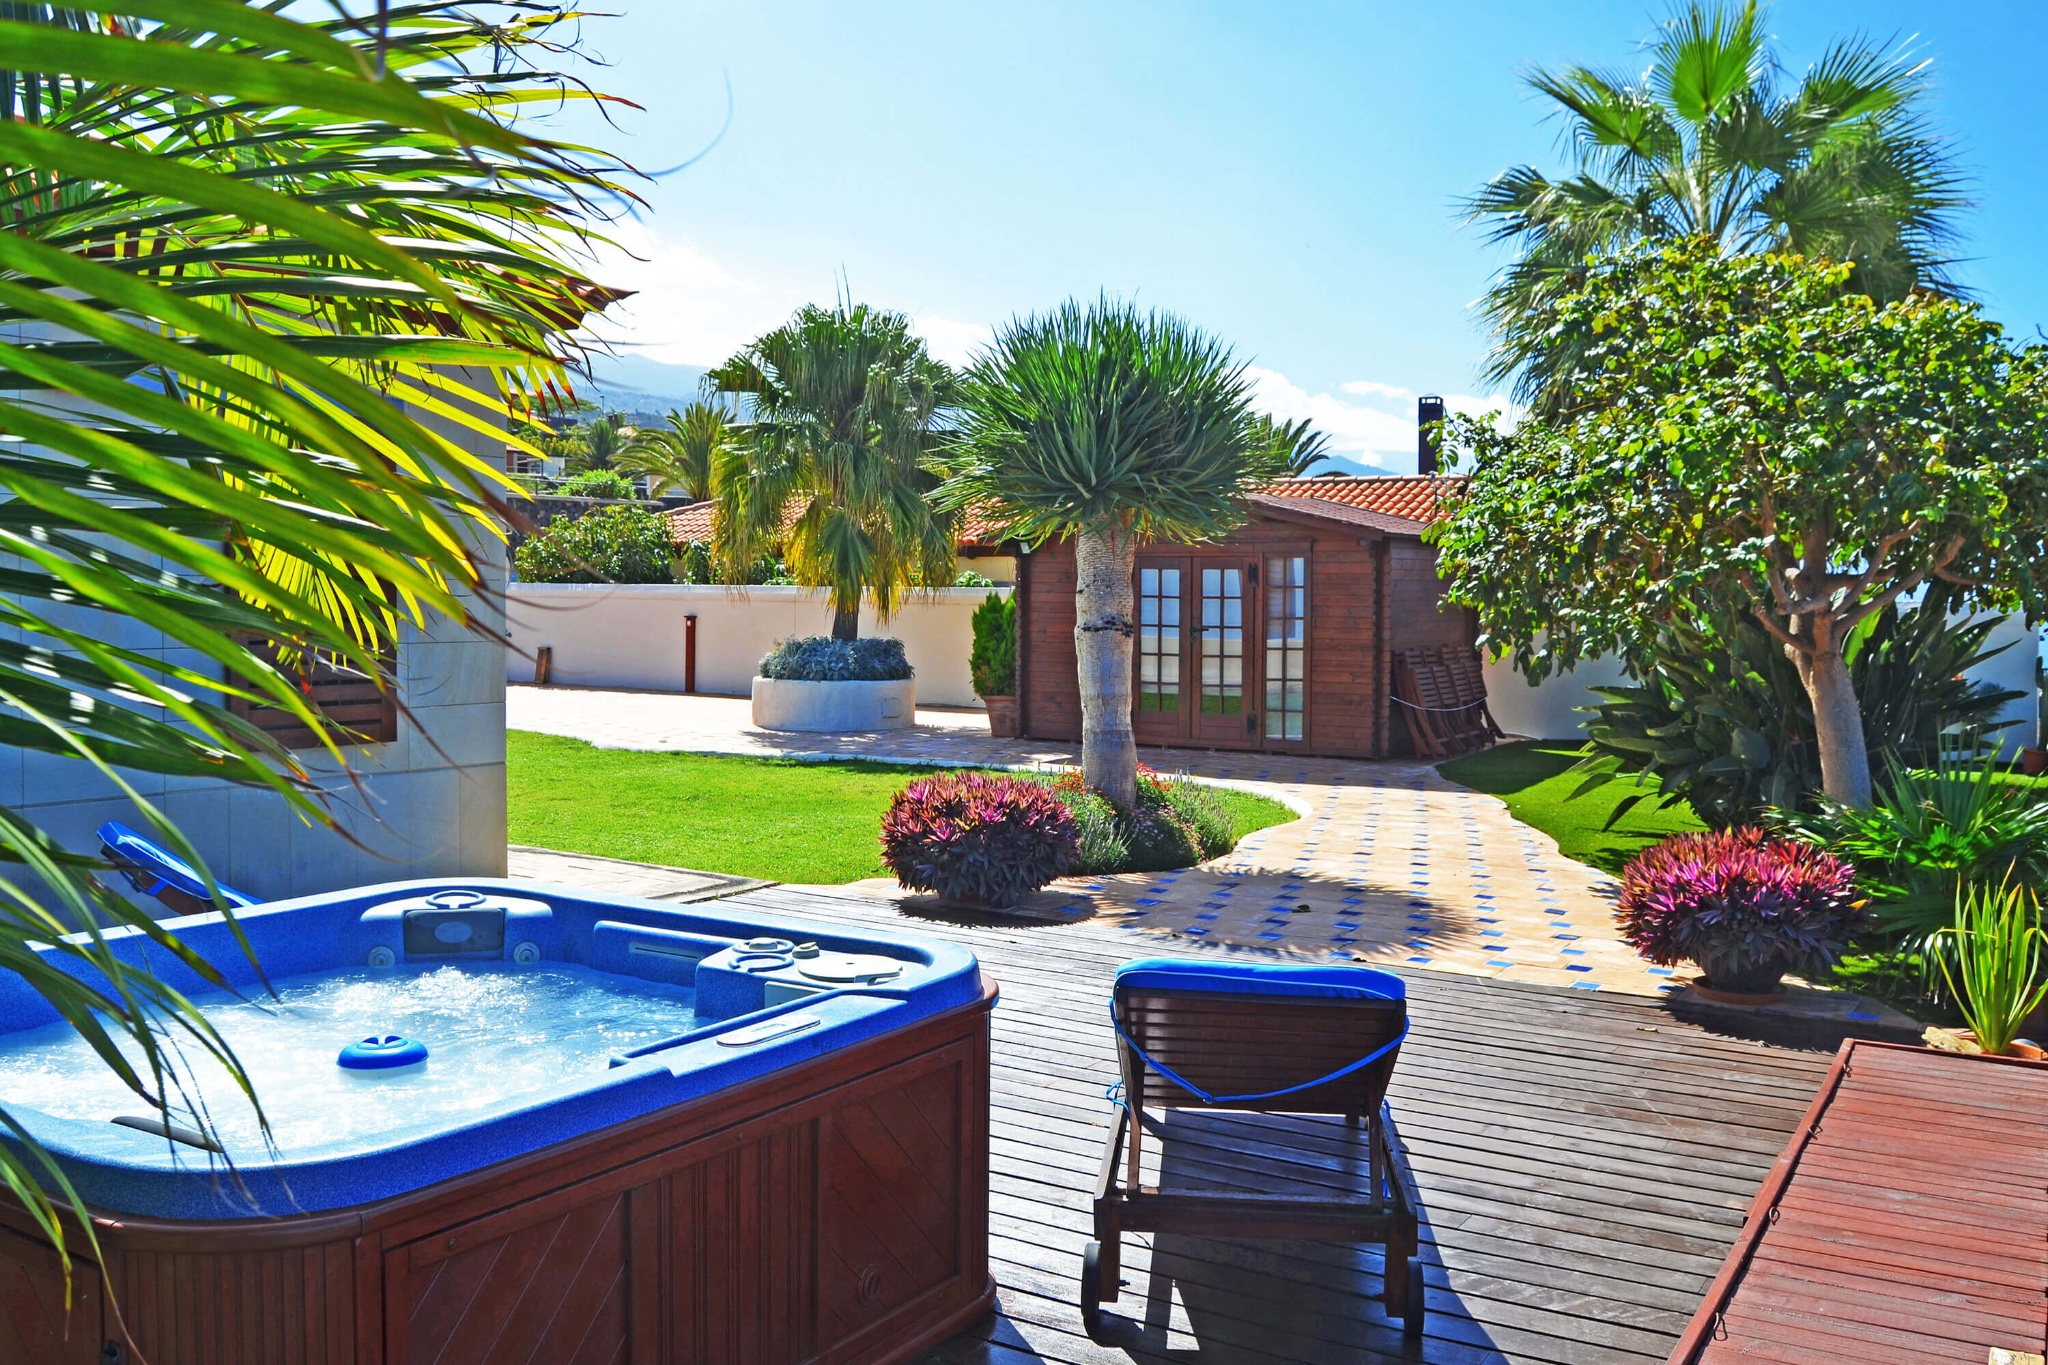 Comfortable luxury villa to rent with jacuzzi, well-kept garden and stunning sea views in the north-west of Tenerife